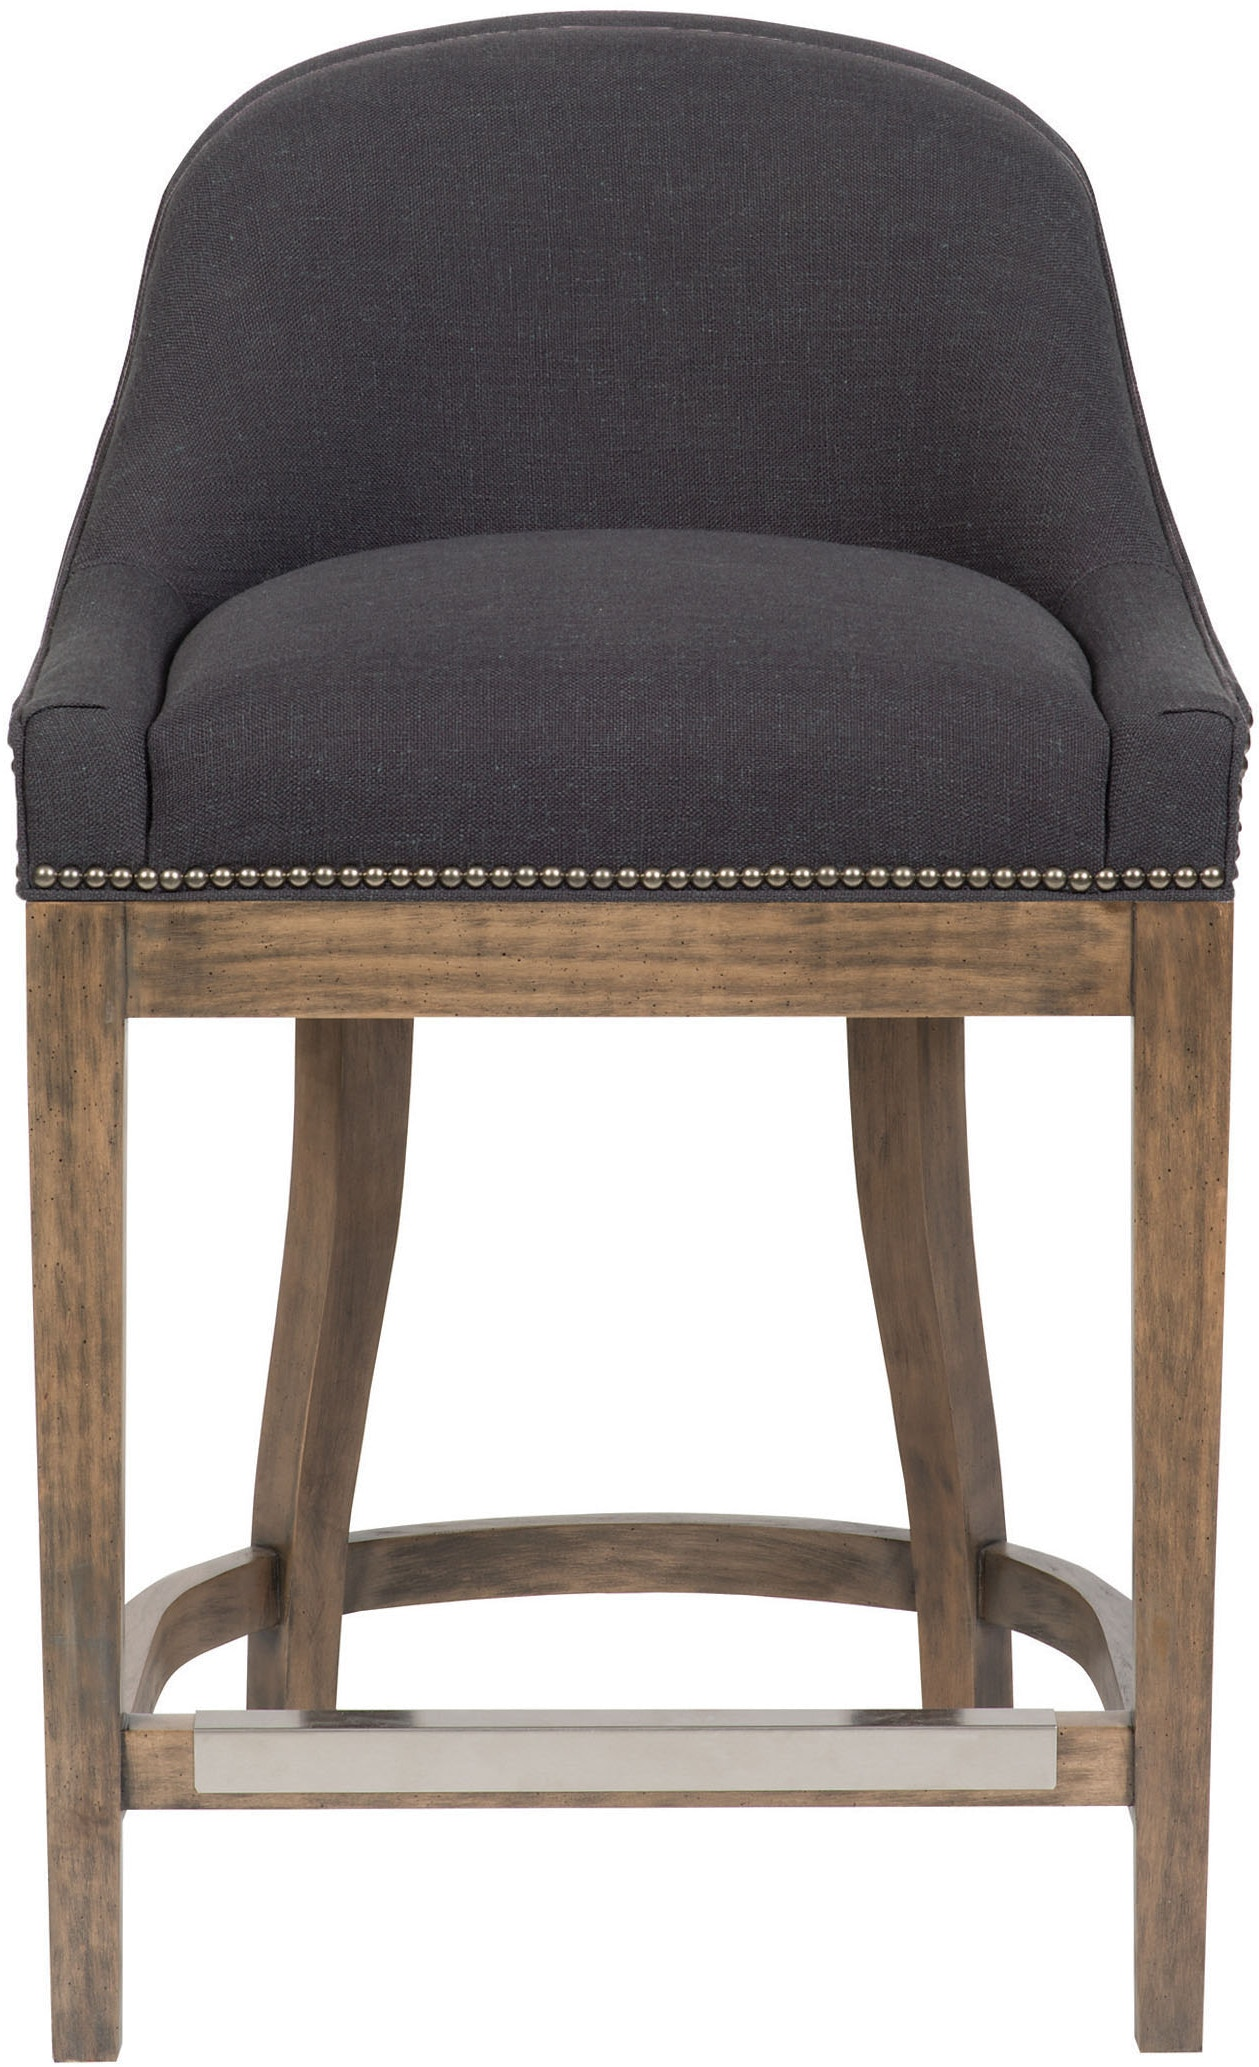 Vanguard Bar and Game Room Calloway Swivel Counter Stool  : v968 css20jake20charcoal20ho from www.stowersfurniture.com size 1024 x 768 jpeg 30kB